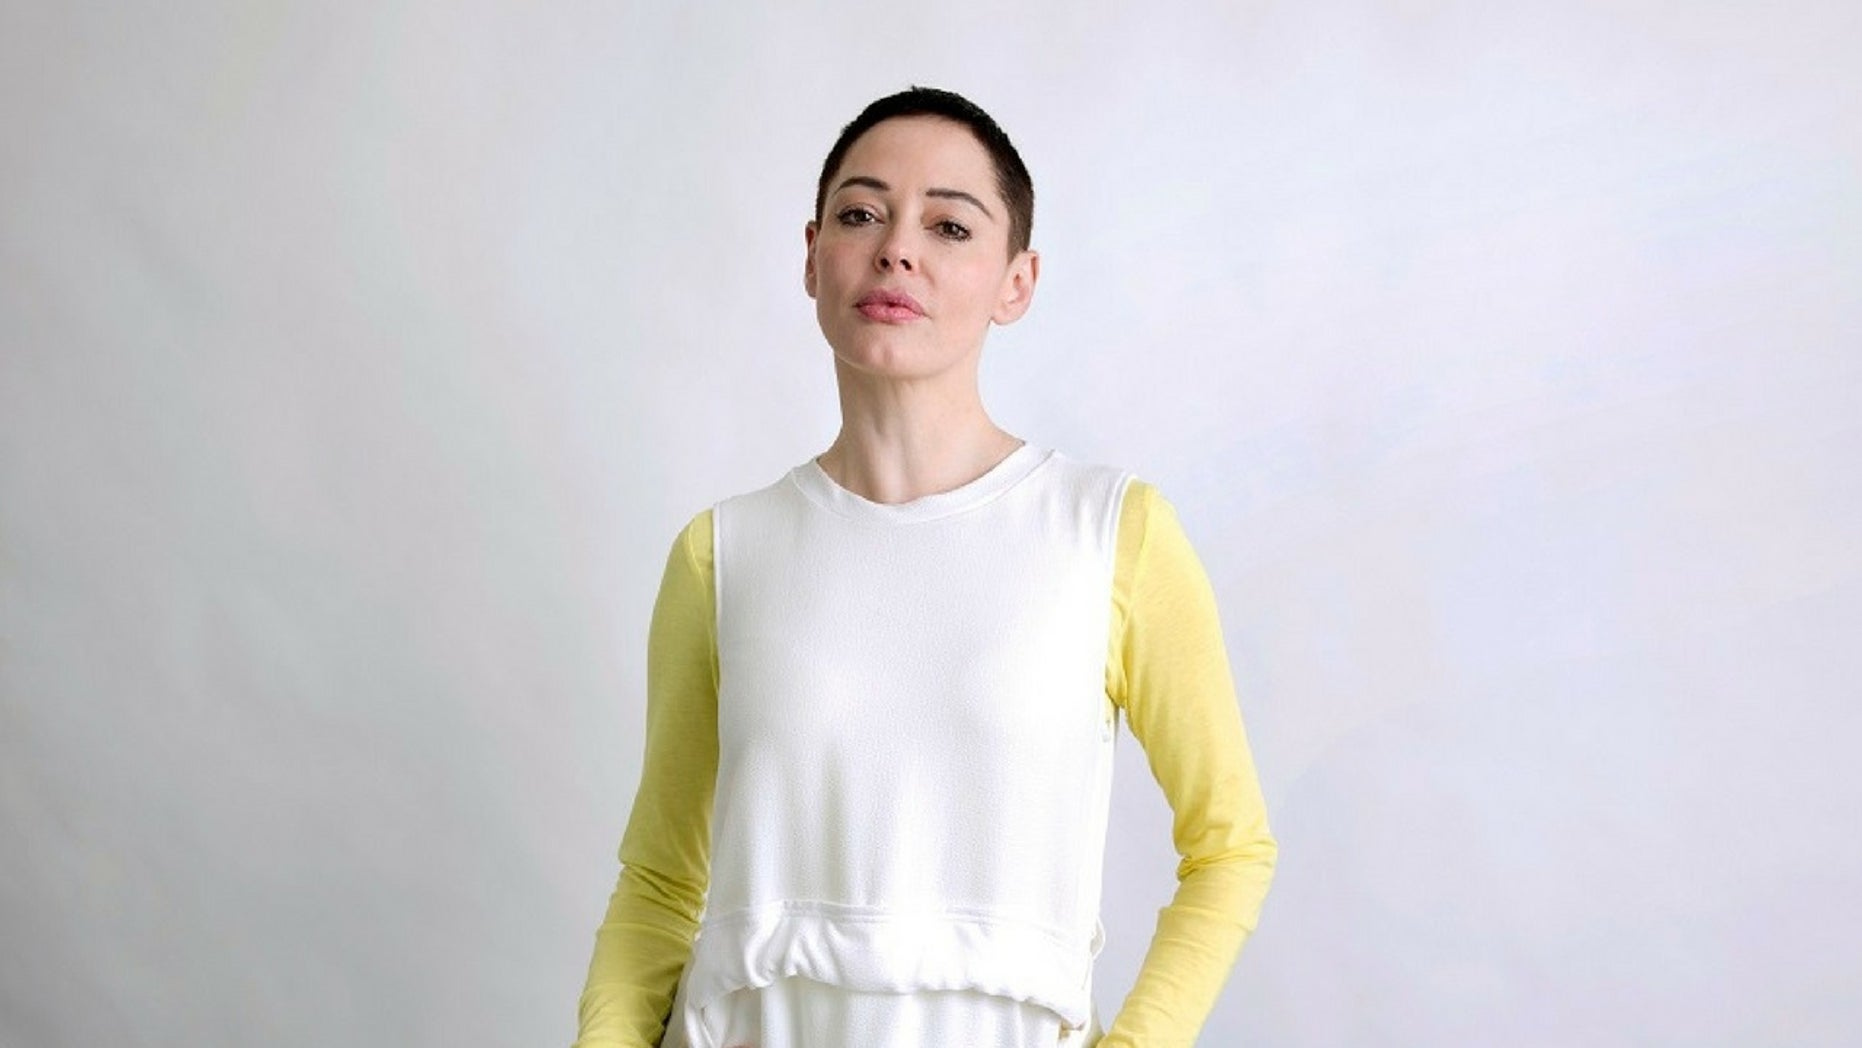 Rose McGowan canceled all public appearances after getting into a shouting match with a transgender woman at a New York City bookstore.